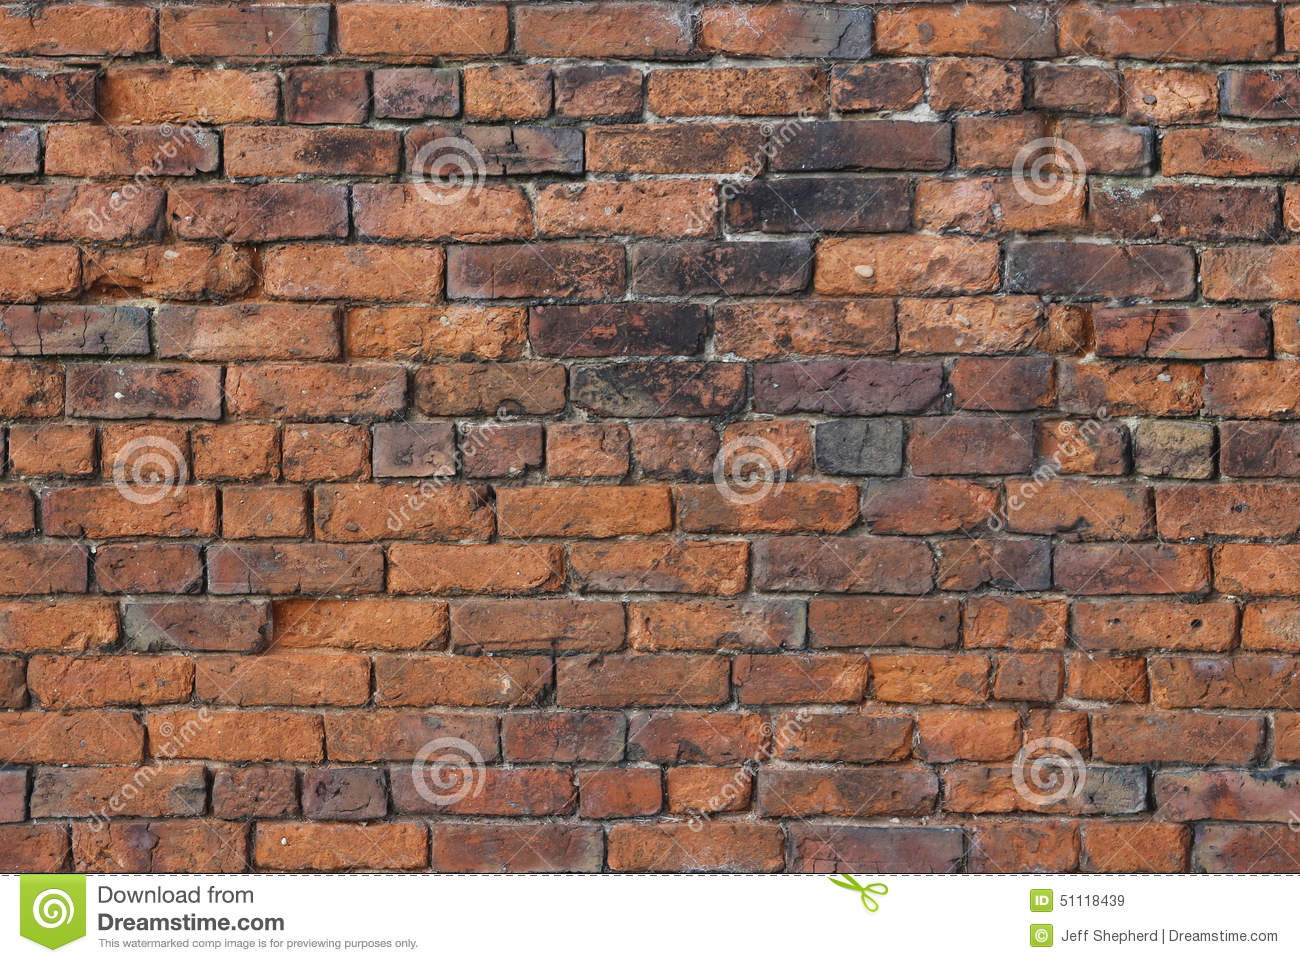 A deteriorating old brick wall could be use a background for Uses for a brick